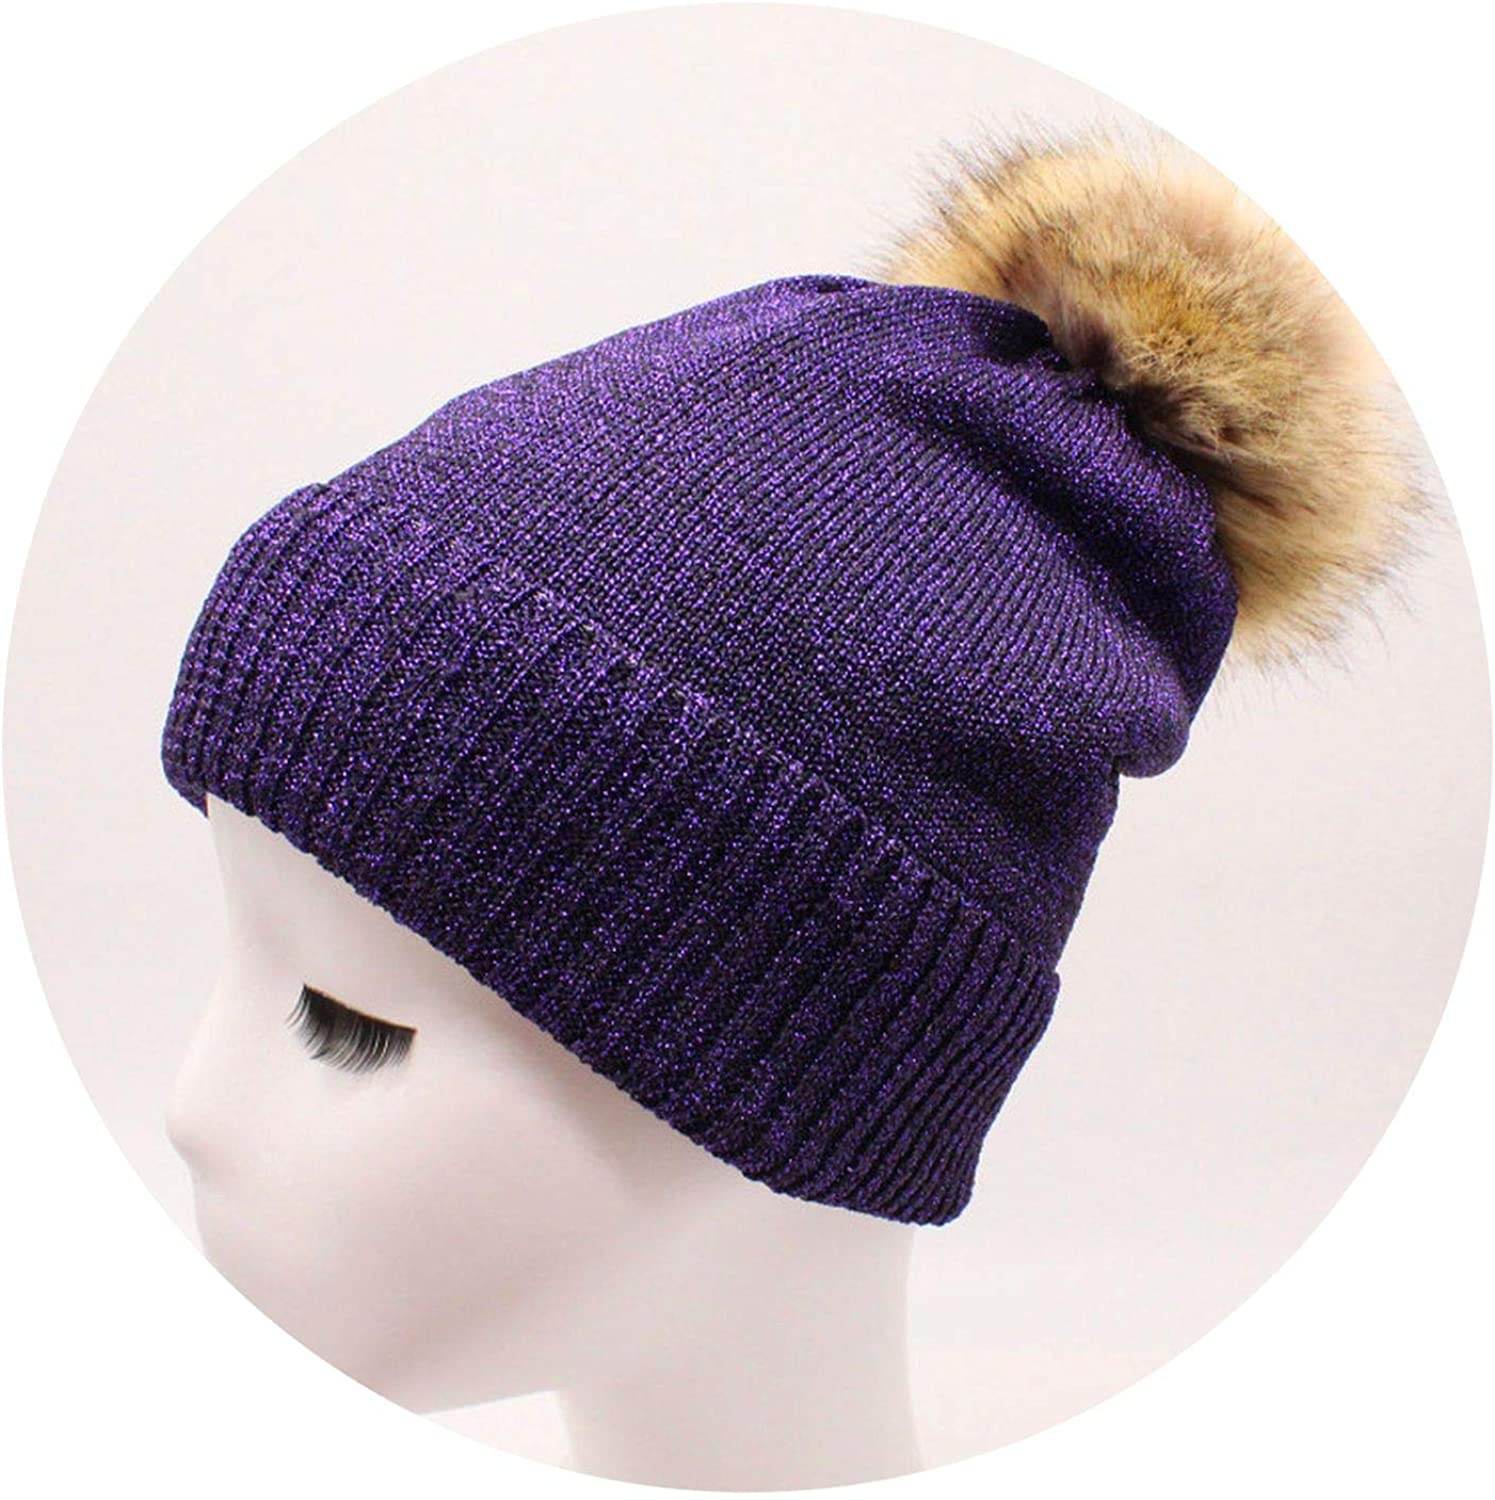 Youth-Song Mink and Cap pom poms Winter hat Girl s hat Knitted Beanies Cap New Thick fe Cap